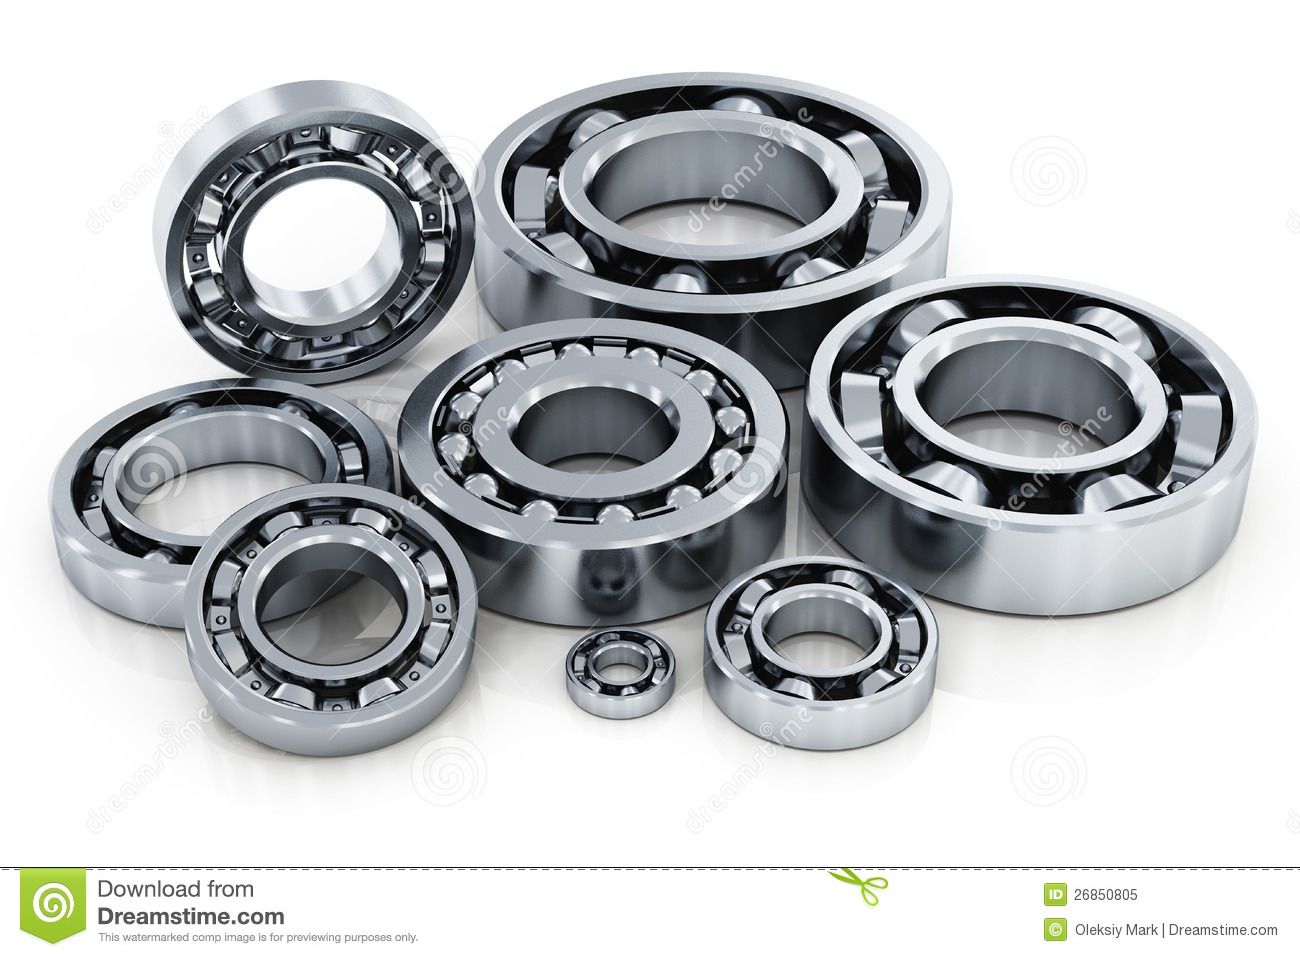 collection of ball bearings royalty free stock photo image 26850805. Black Bedroom Furniture Sets. Home Design Ideas